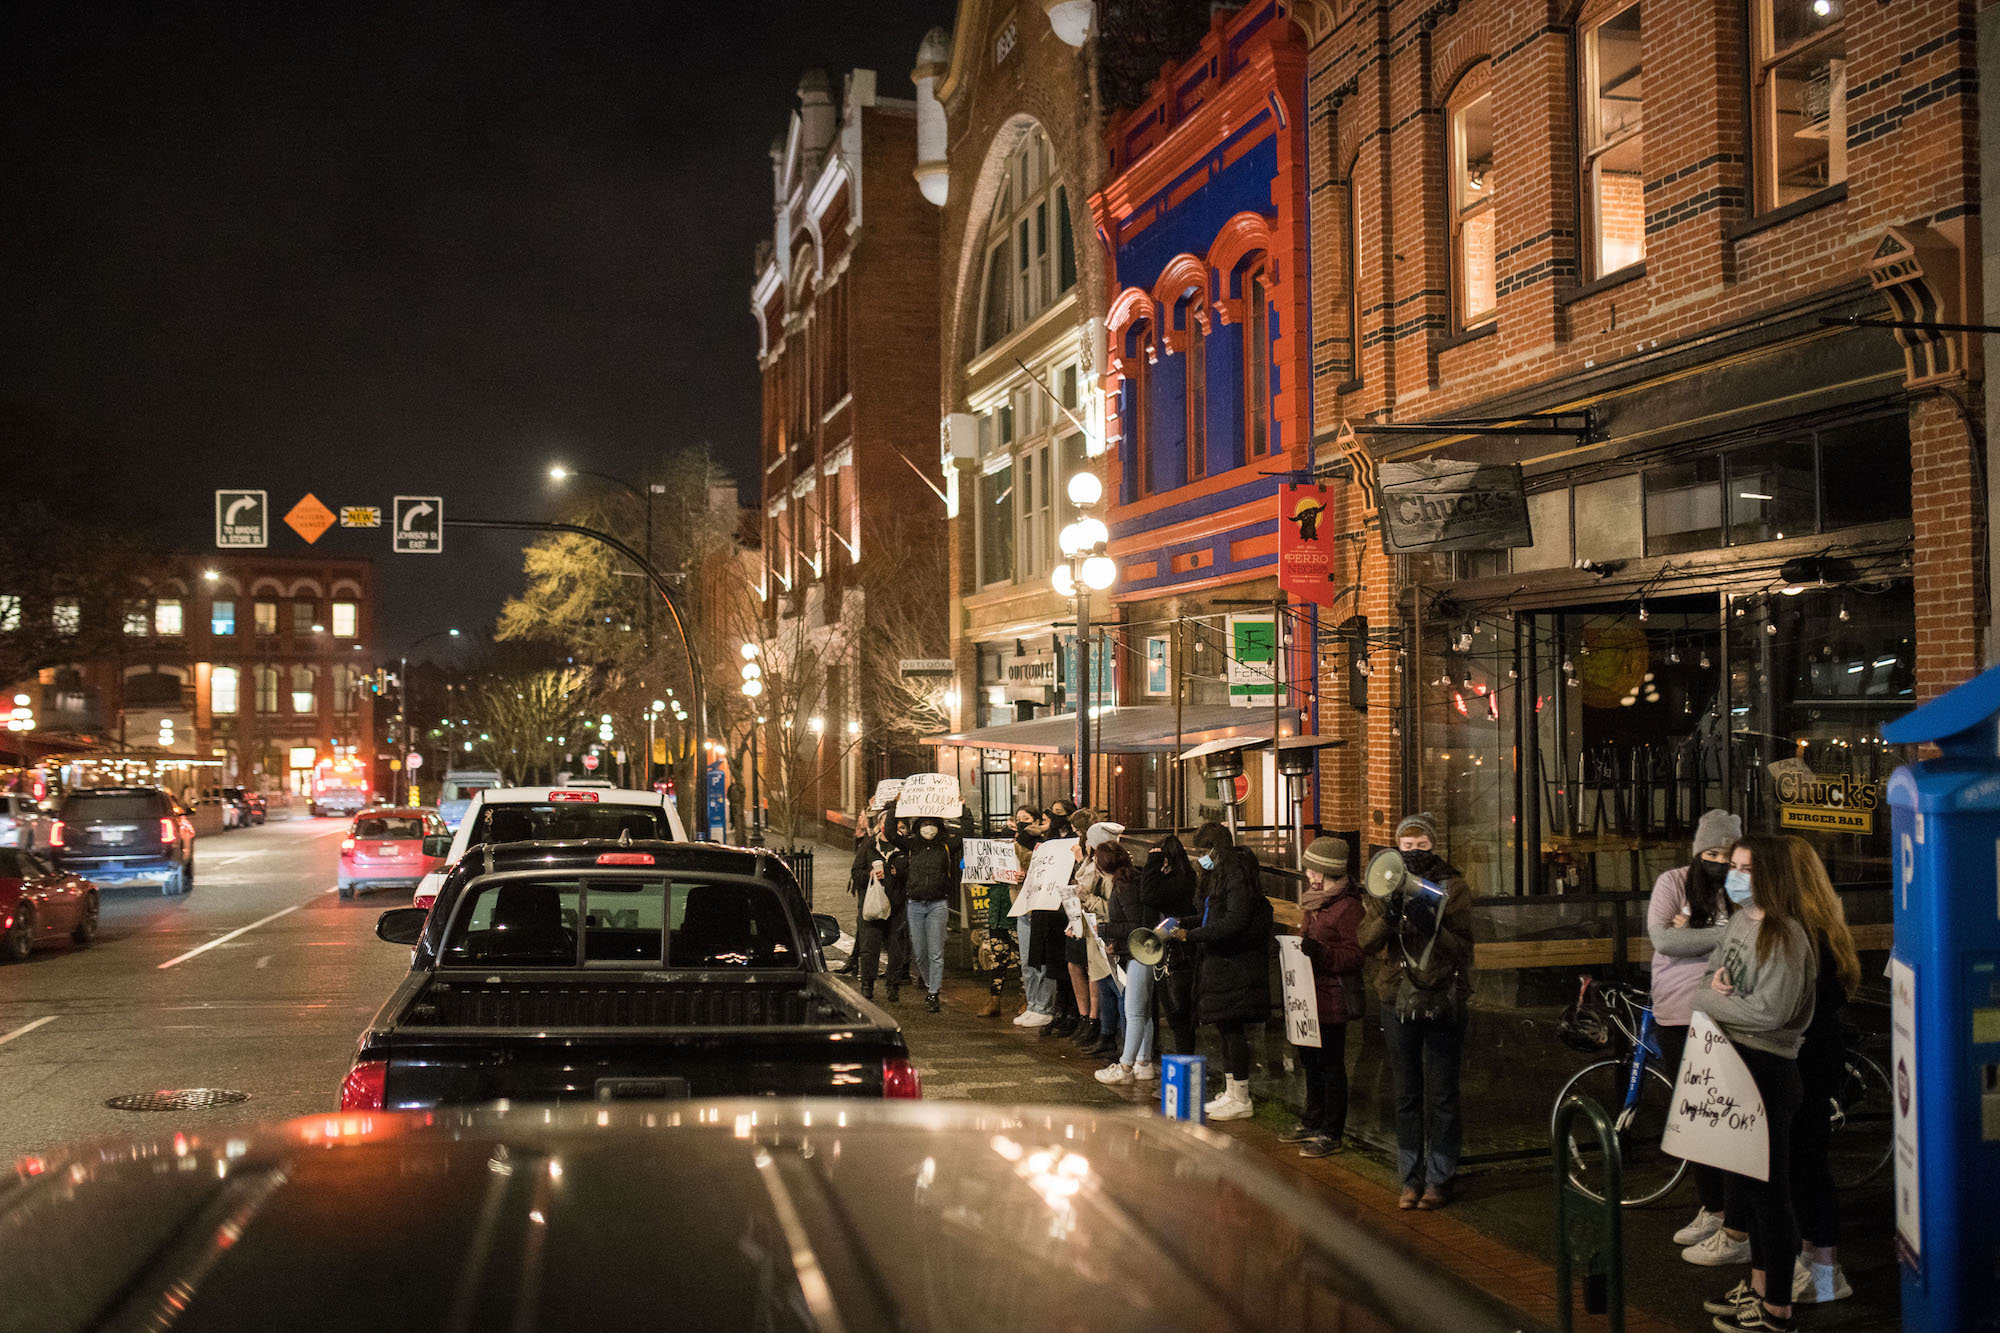 Rape allegations connected to a popular bar lead to a reckoning for Victoria's restaurant culture